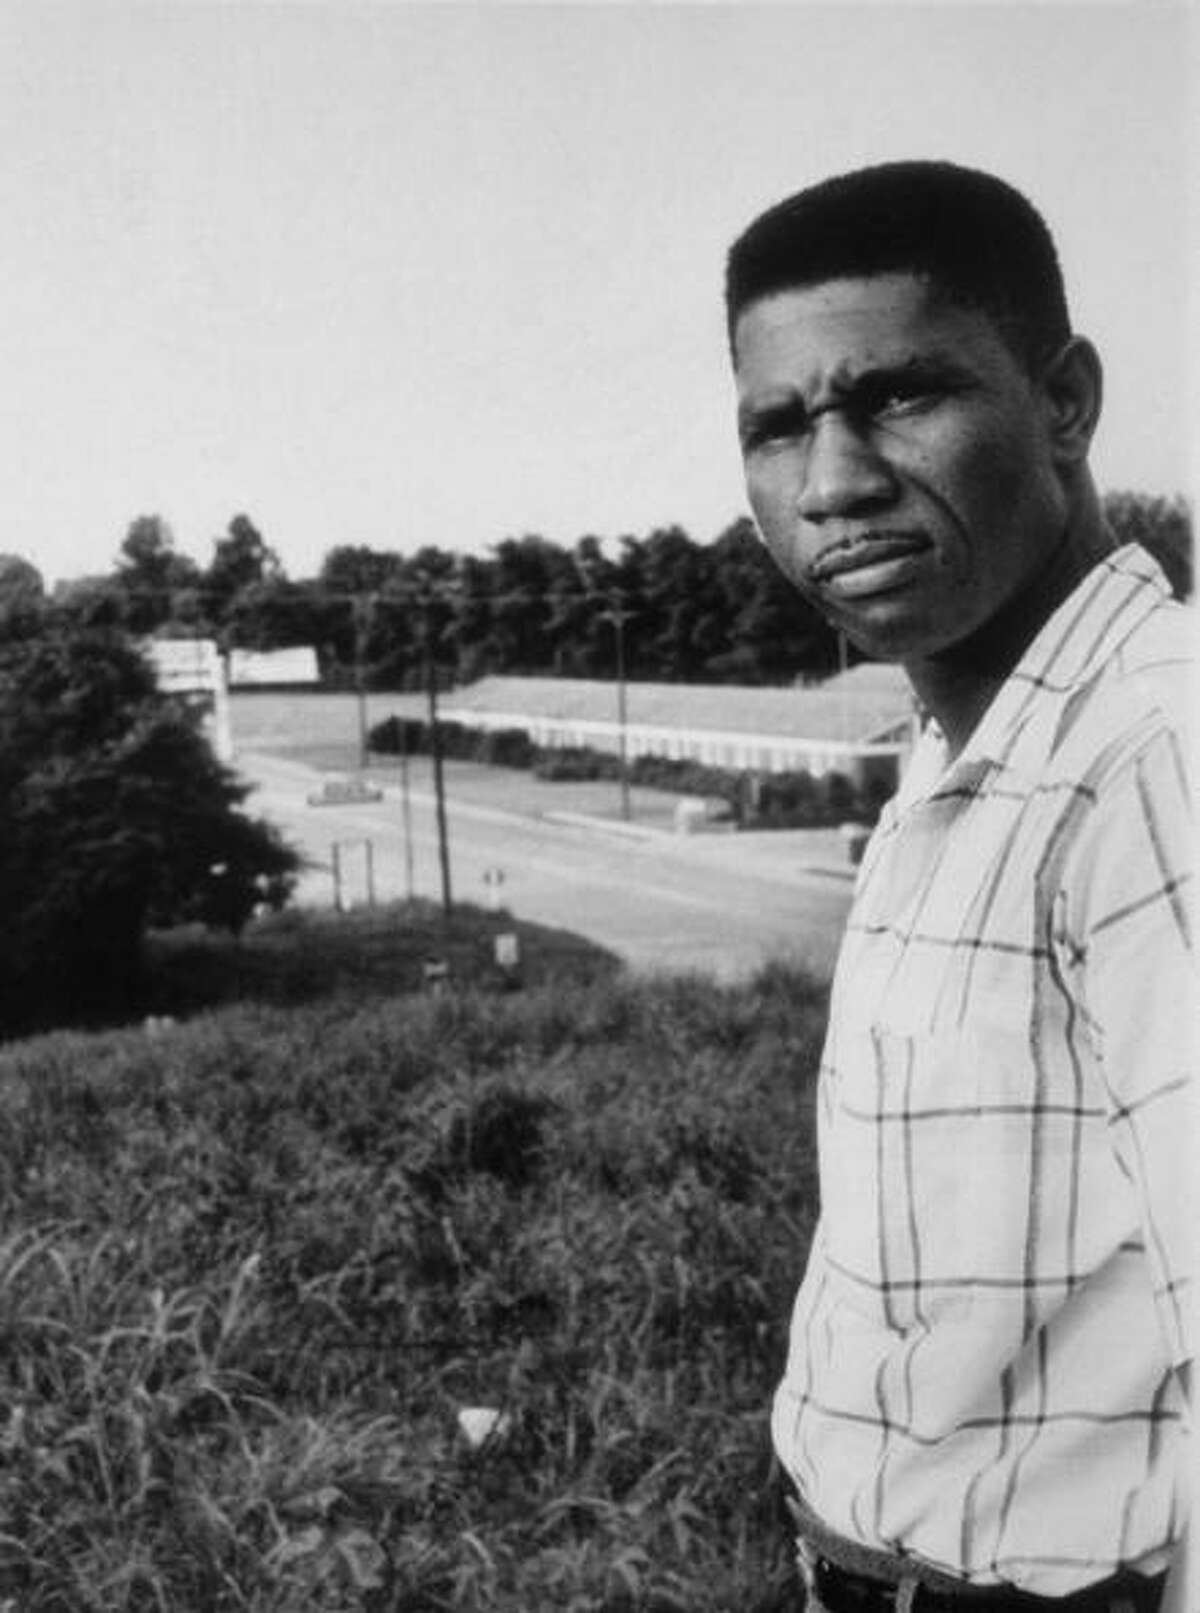 June 12, 1963: Jackson, Mississippi's Medgar Evers, NAACP Mississippi field secretary, is shot and killed at his home.